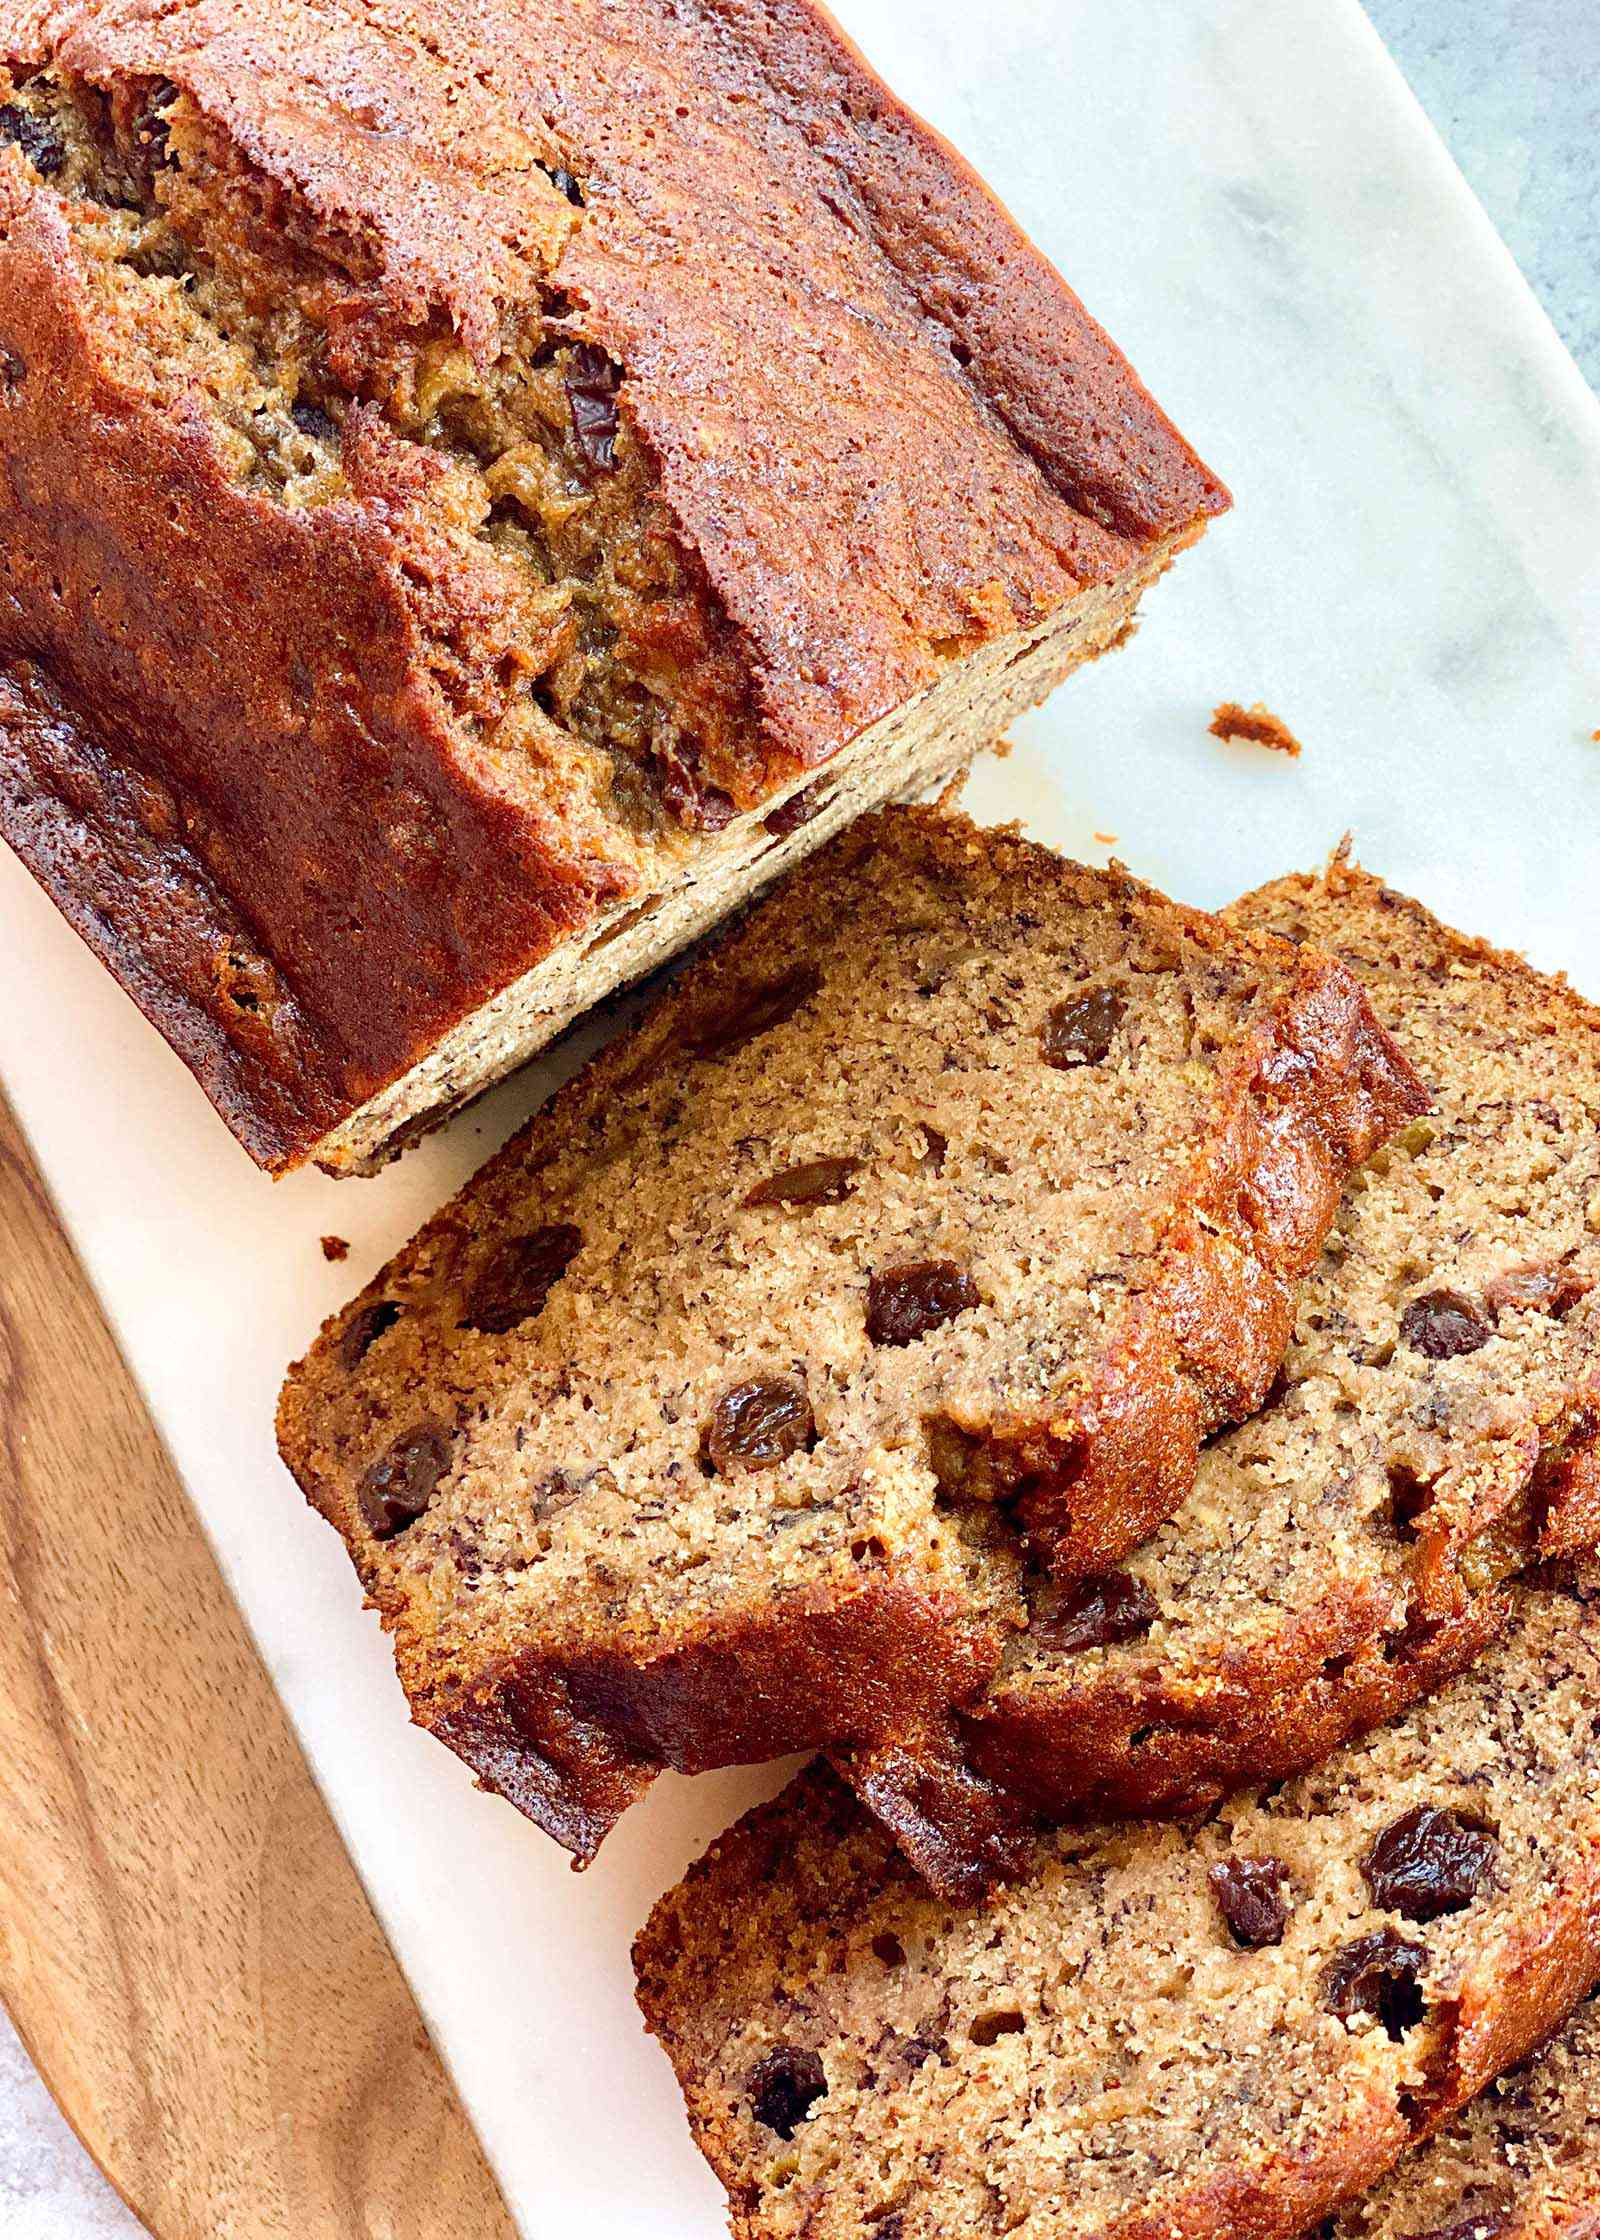 A loaf of rum raisin banana bread with four slices cut off and laying next to each other.